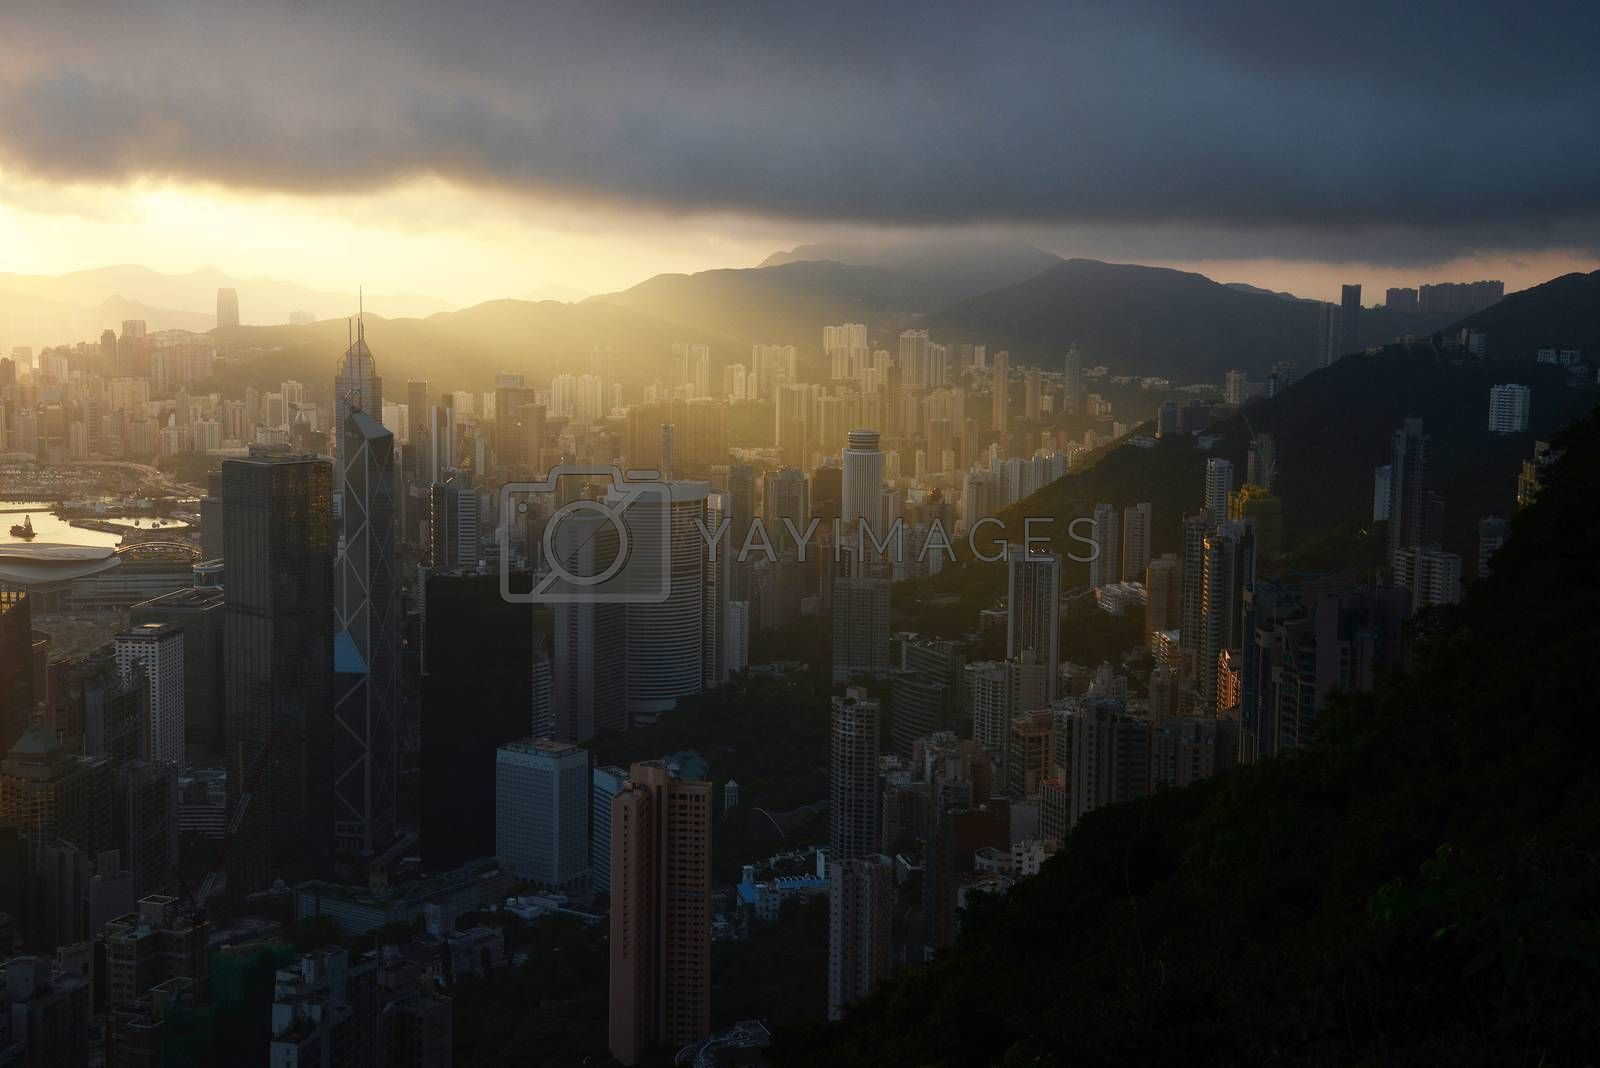 Royalty free image of sunrise from the peak by porbital